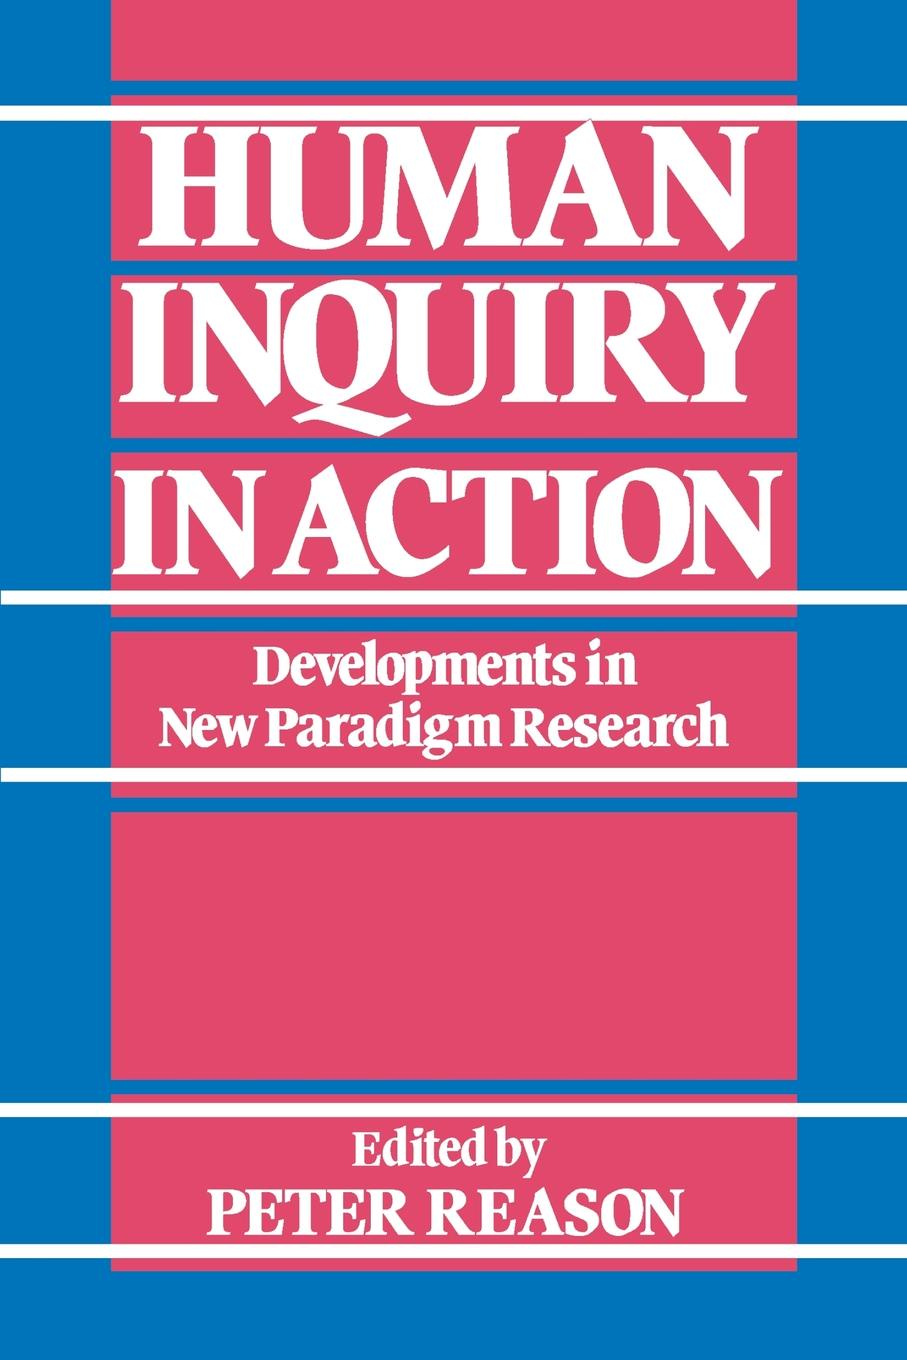 Фото - Human Inquiry in Action. Developments in New Paradigm Research deming m elen landscape architectural research inquiry strategy design